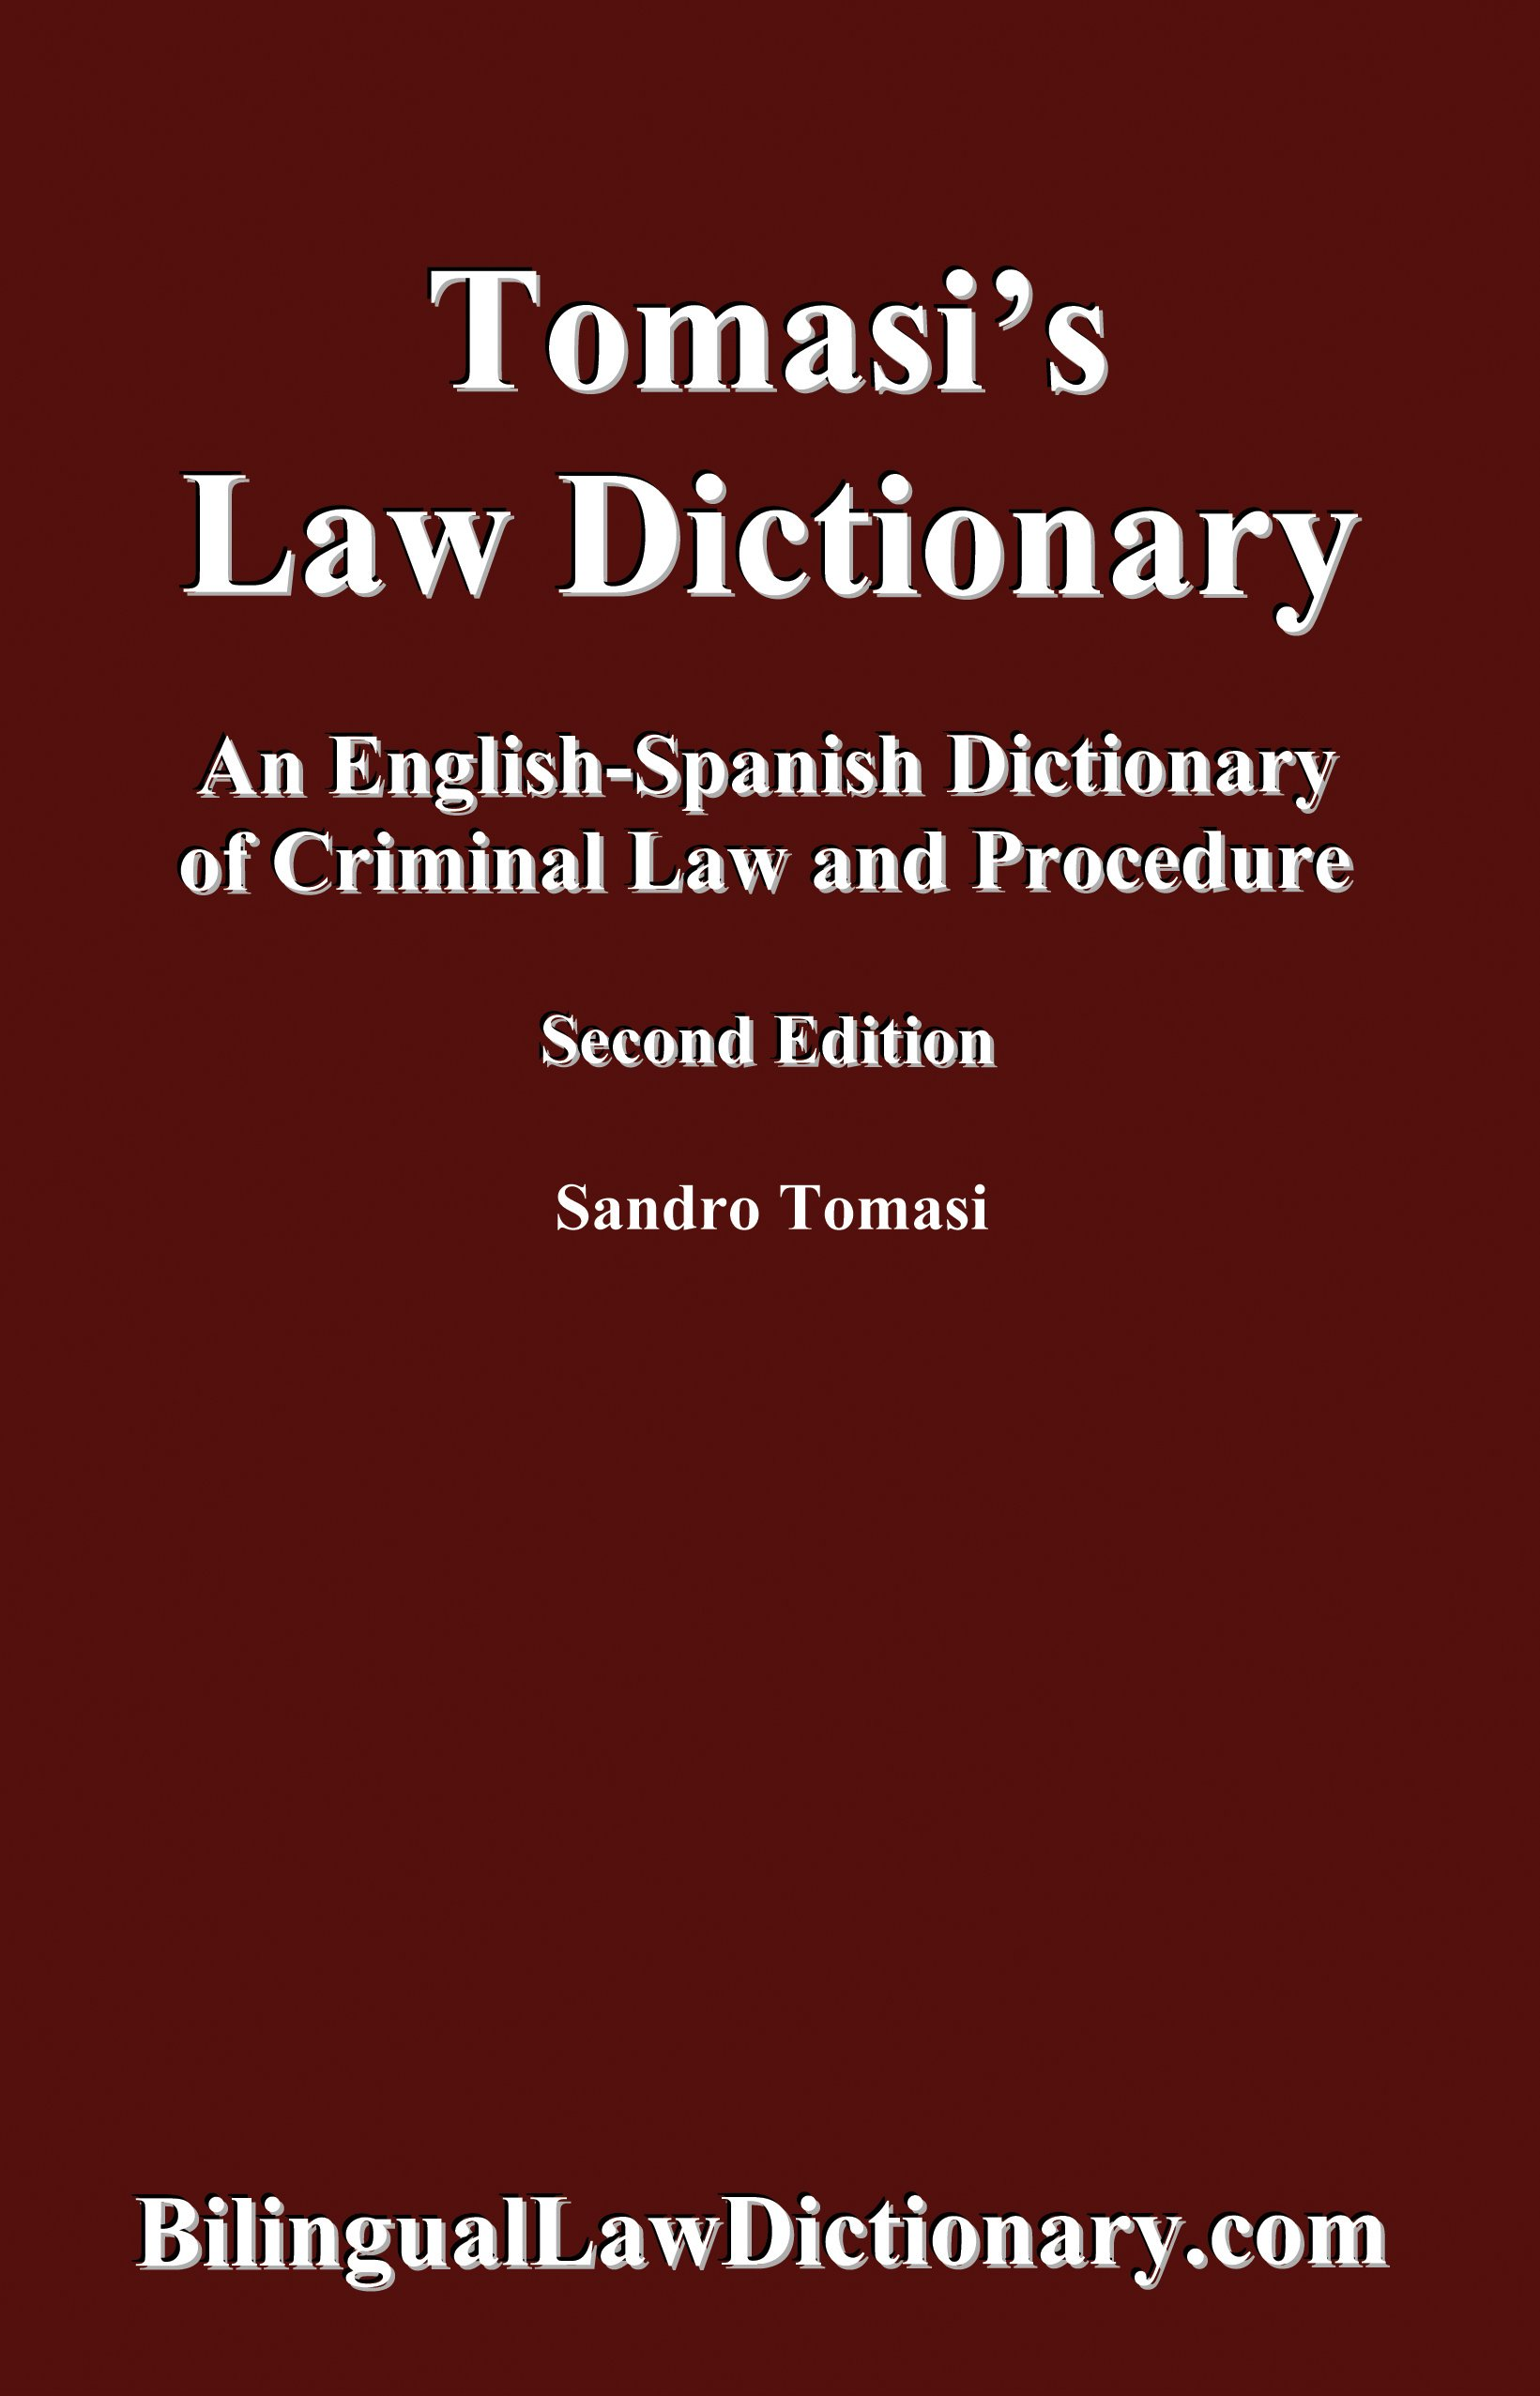 An English-Spanish Dictionary of Criminal Law and Procedure (Tomasi's Law Dictionary). Second Edition (Bilingual Edition) (Spanish Edition) (Spanish and English Edition) by BilingualLawDictionary.com